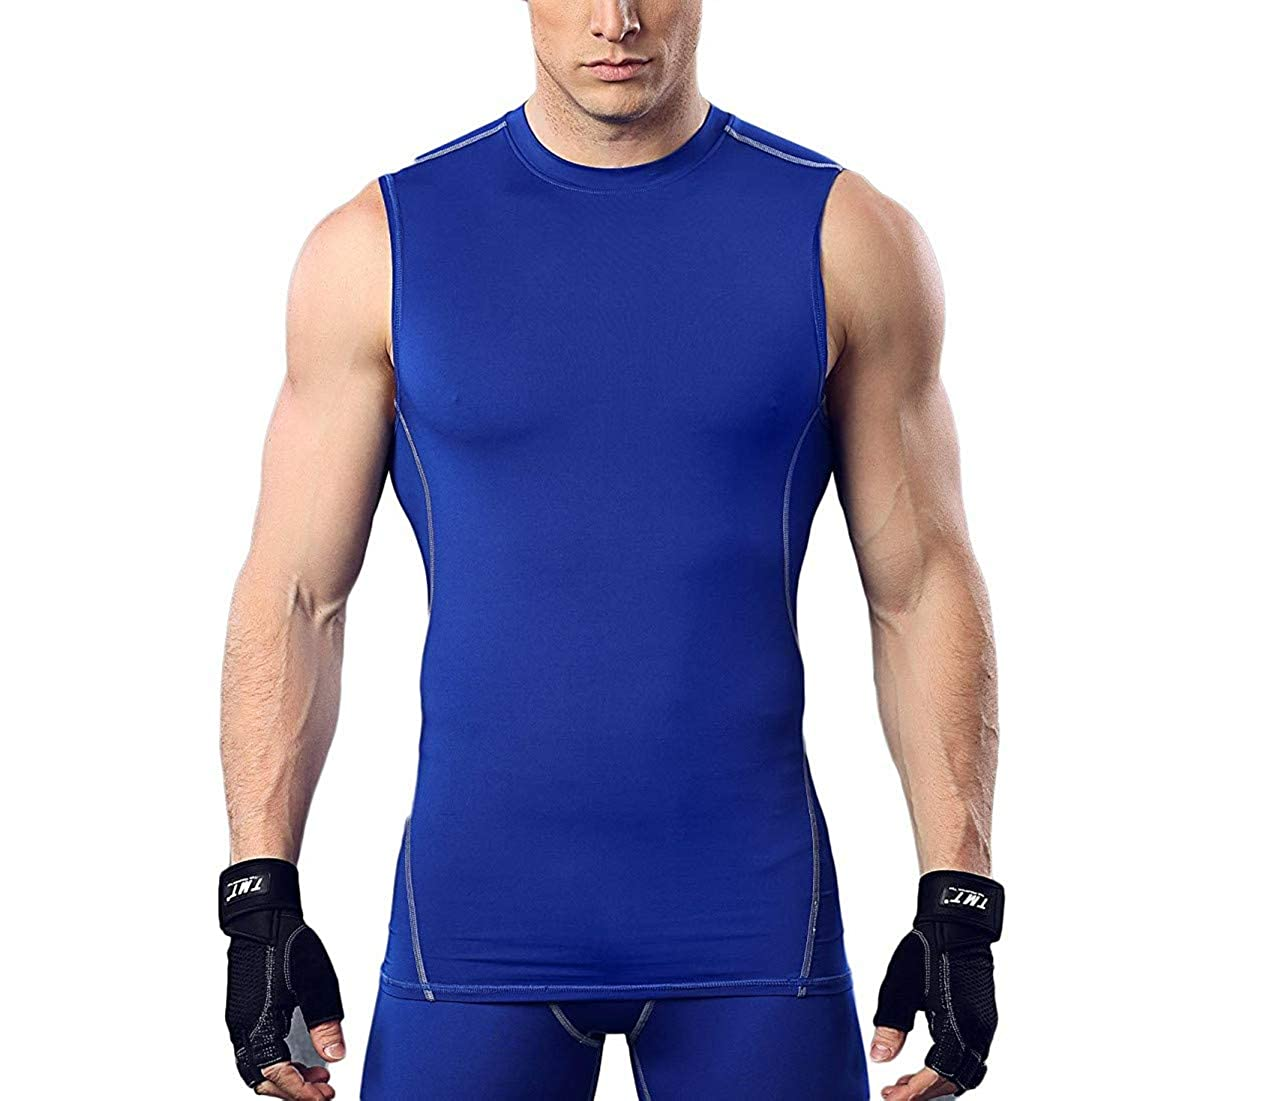 DOLAA Men's Muscle Tank Baselayer Sleeveless Compression Top Running Yoga